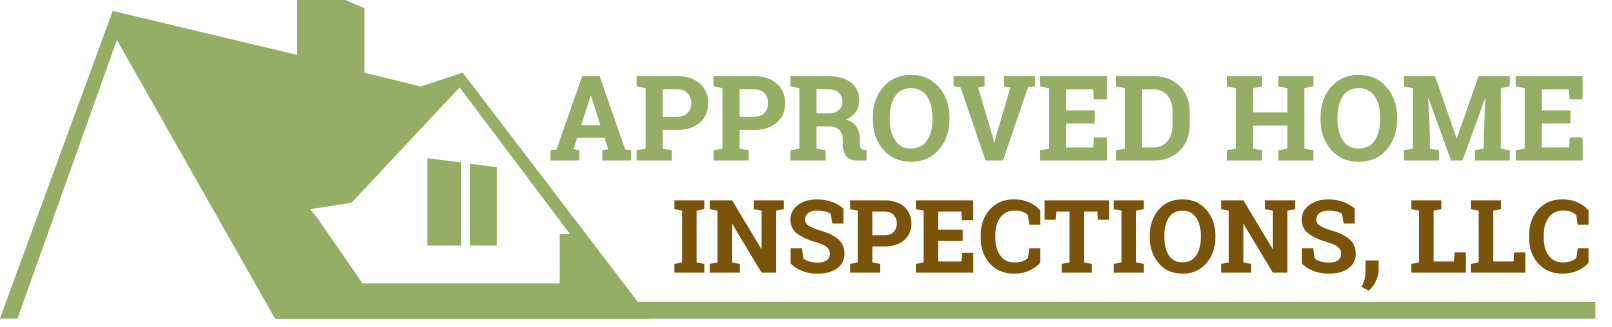 Approved Home Inspections, LLC